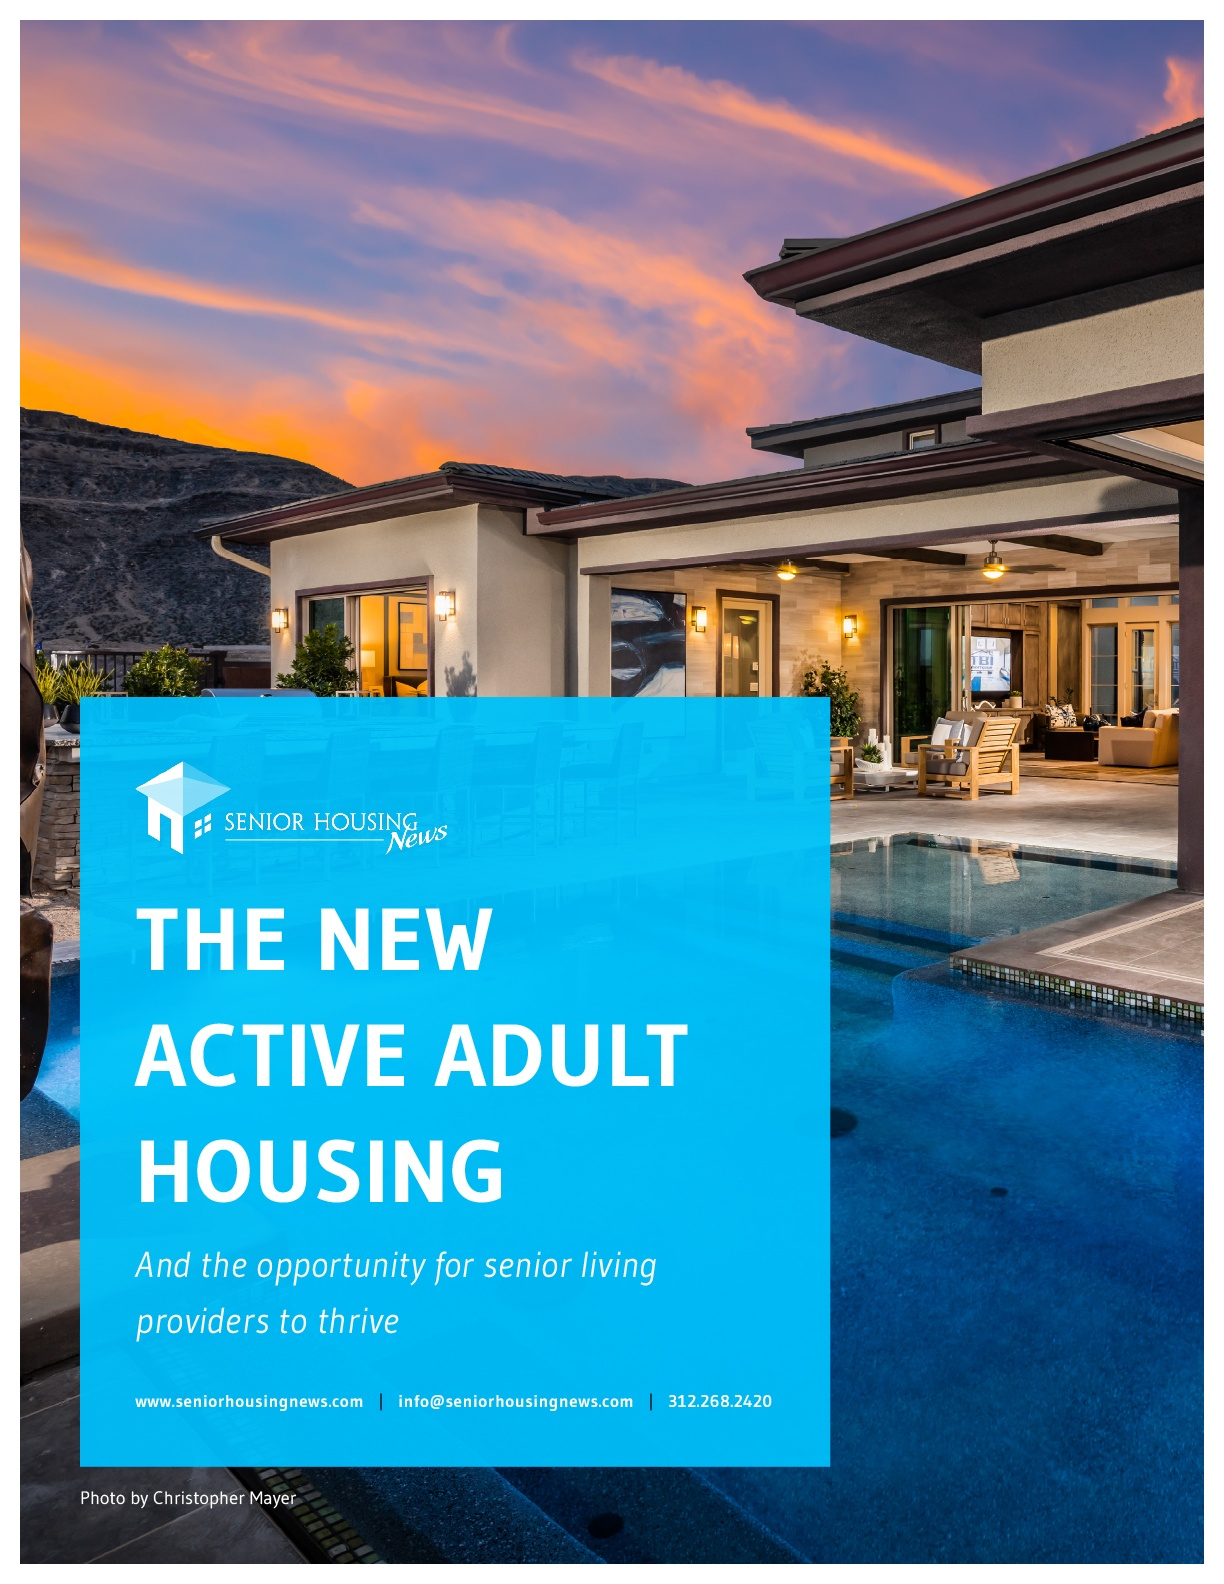 The New Active Adult Housing